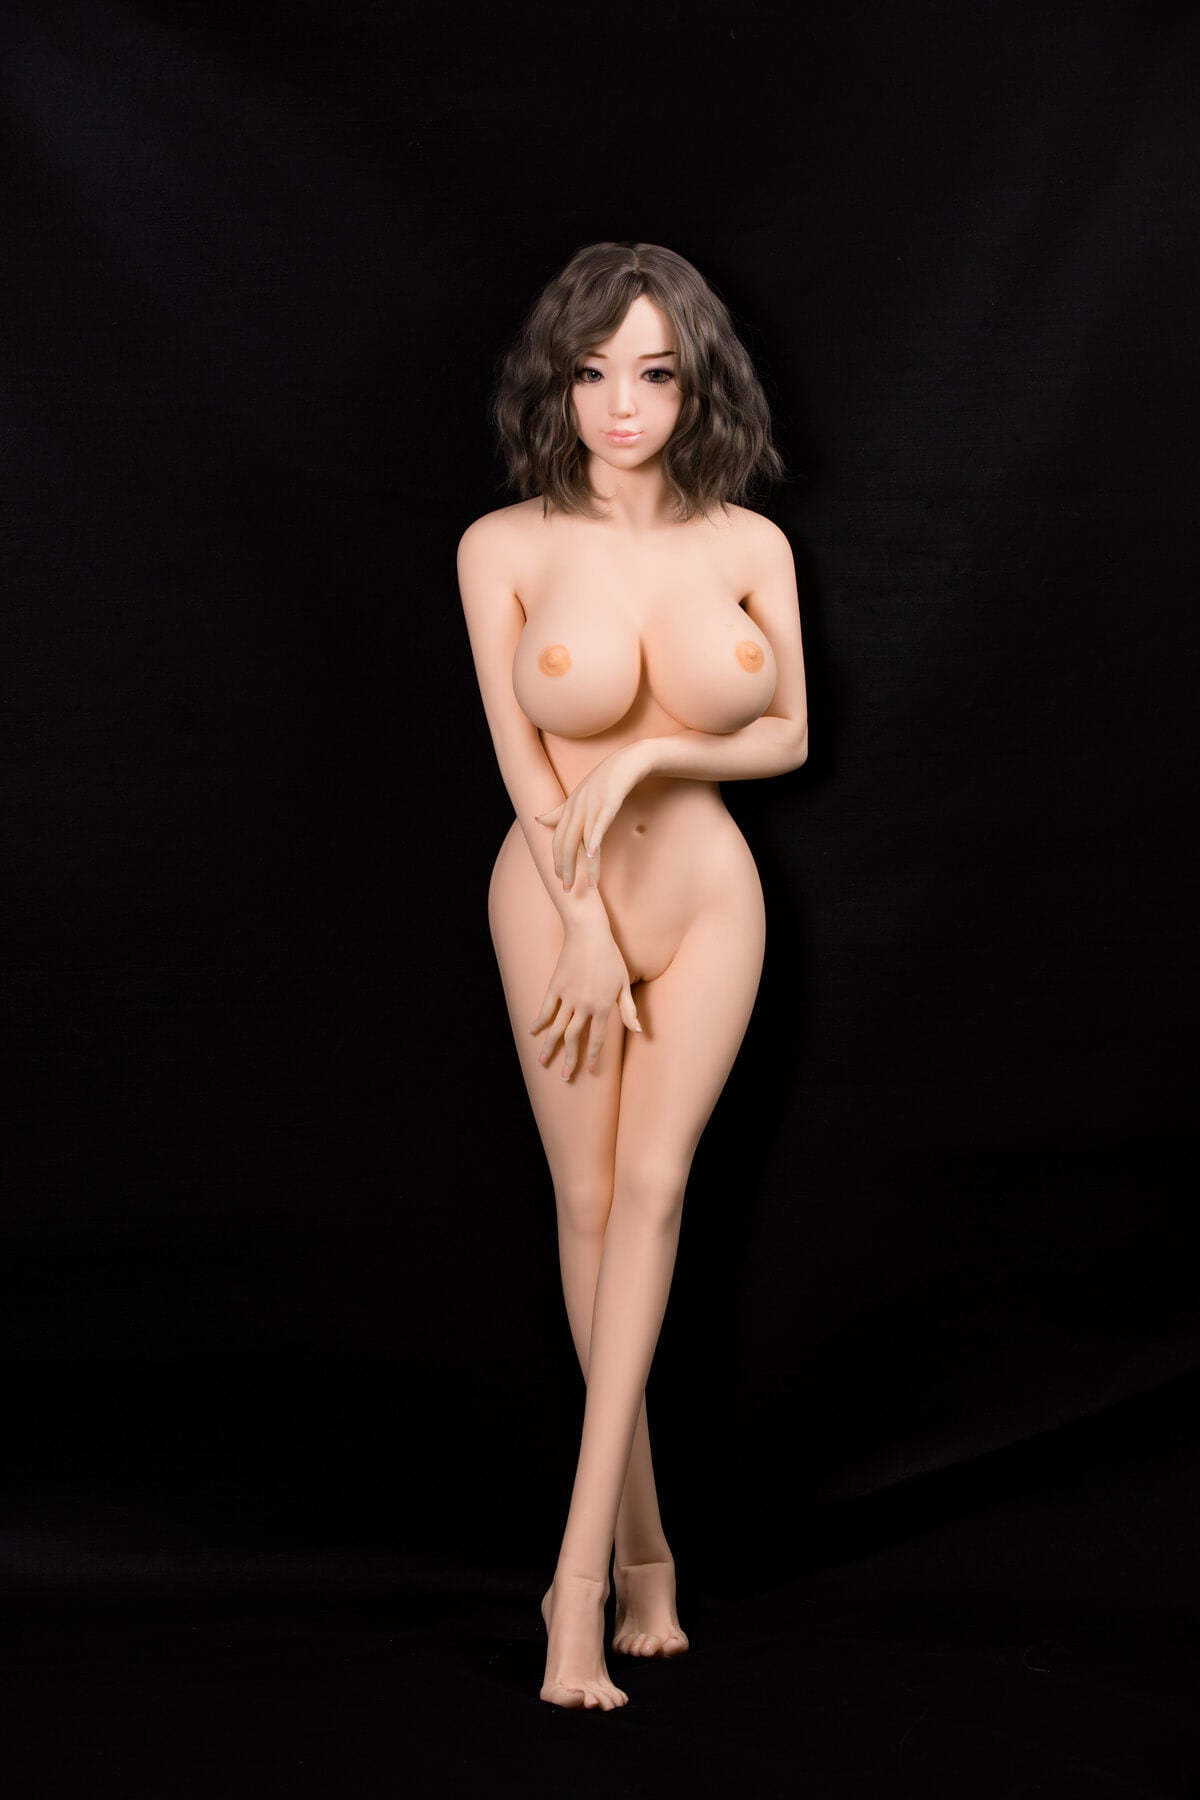 Thai Sex Doll - Sao